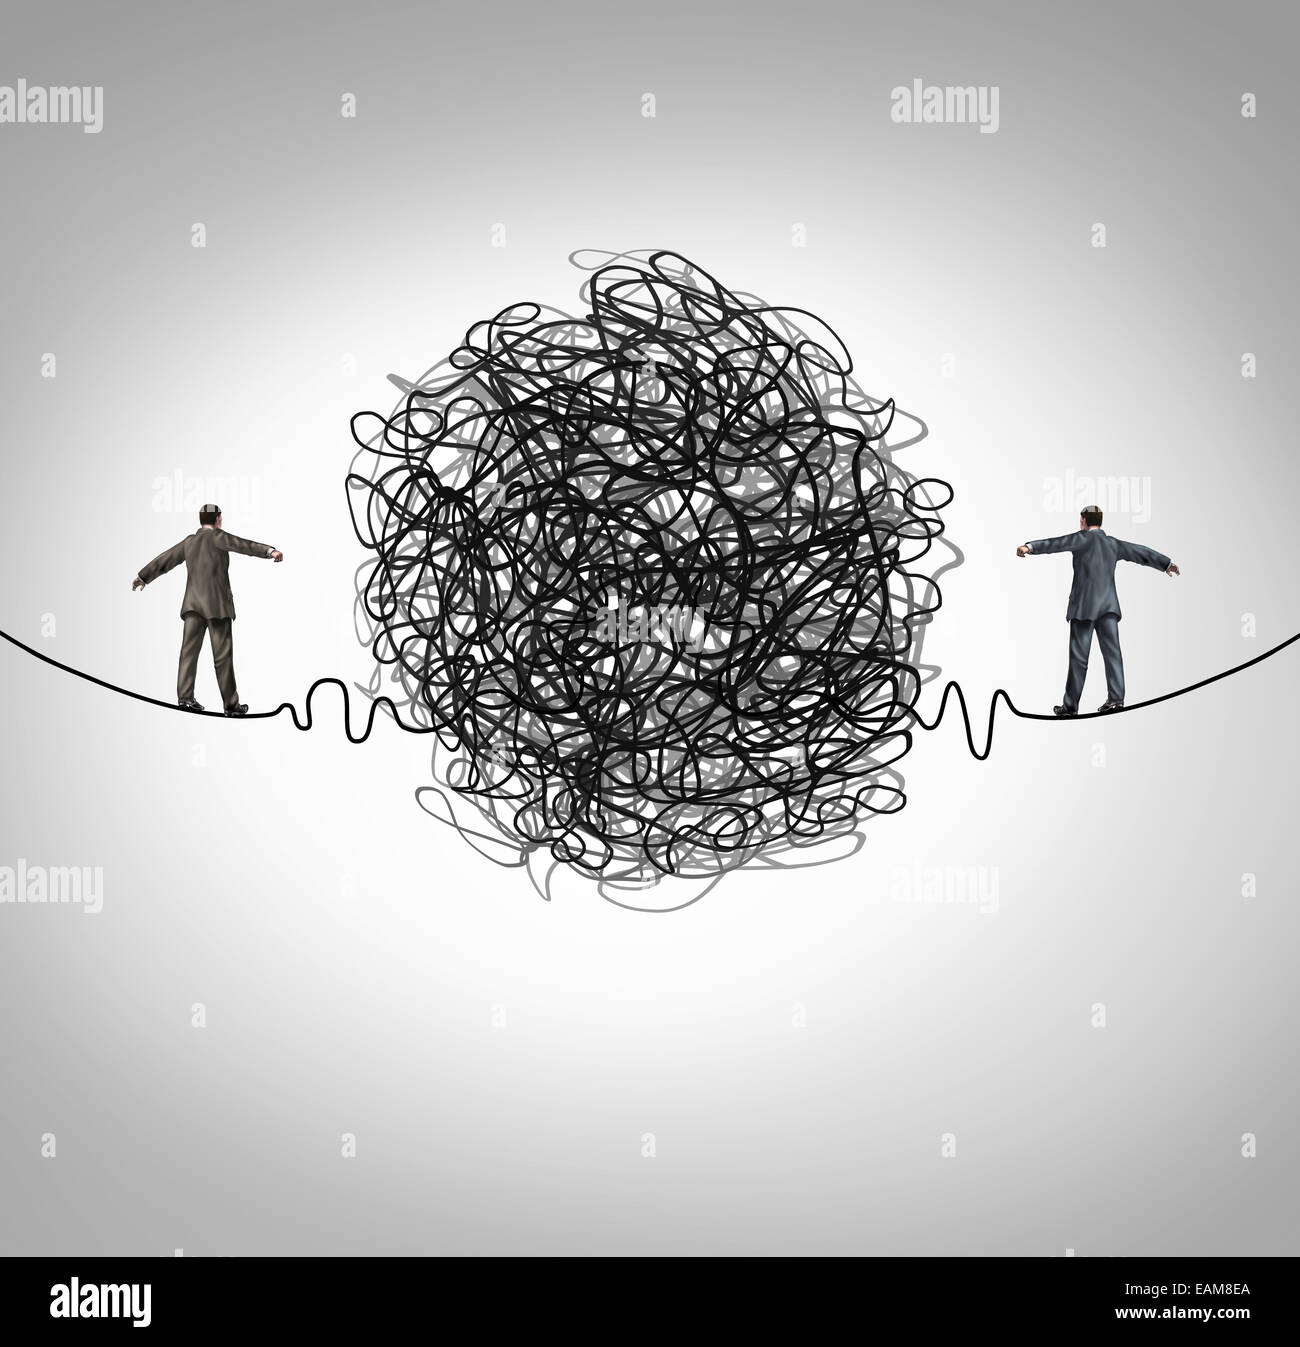 Inspirational Quotes On Pinterest: Partnership Problem And Business Confrontation Concept As